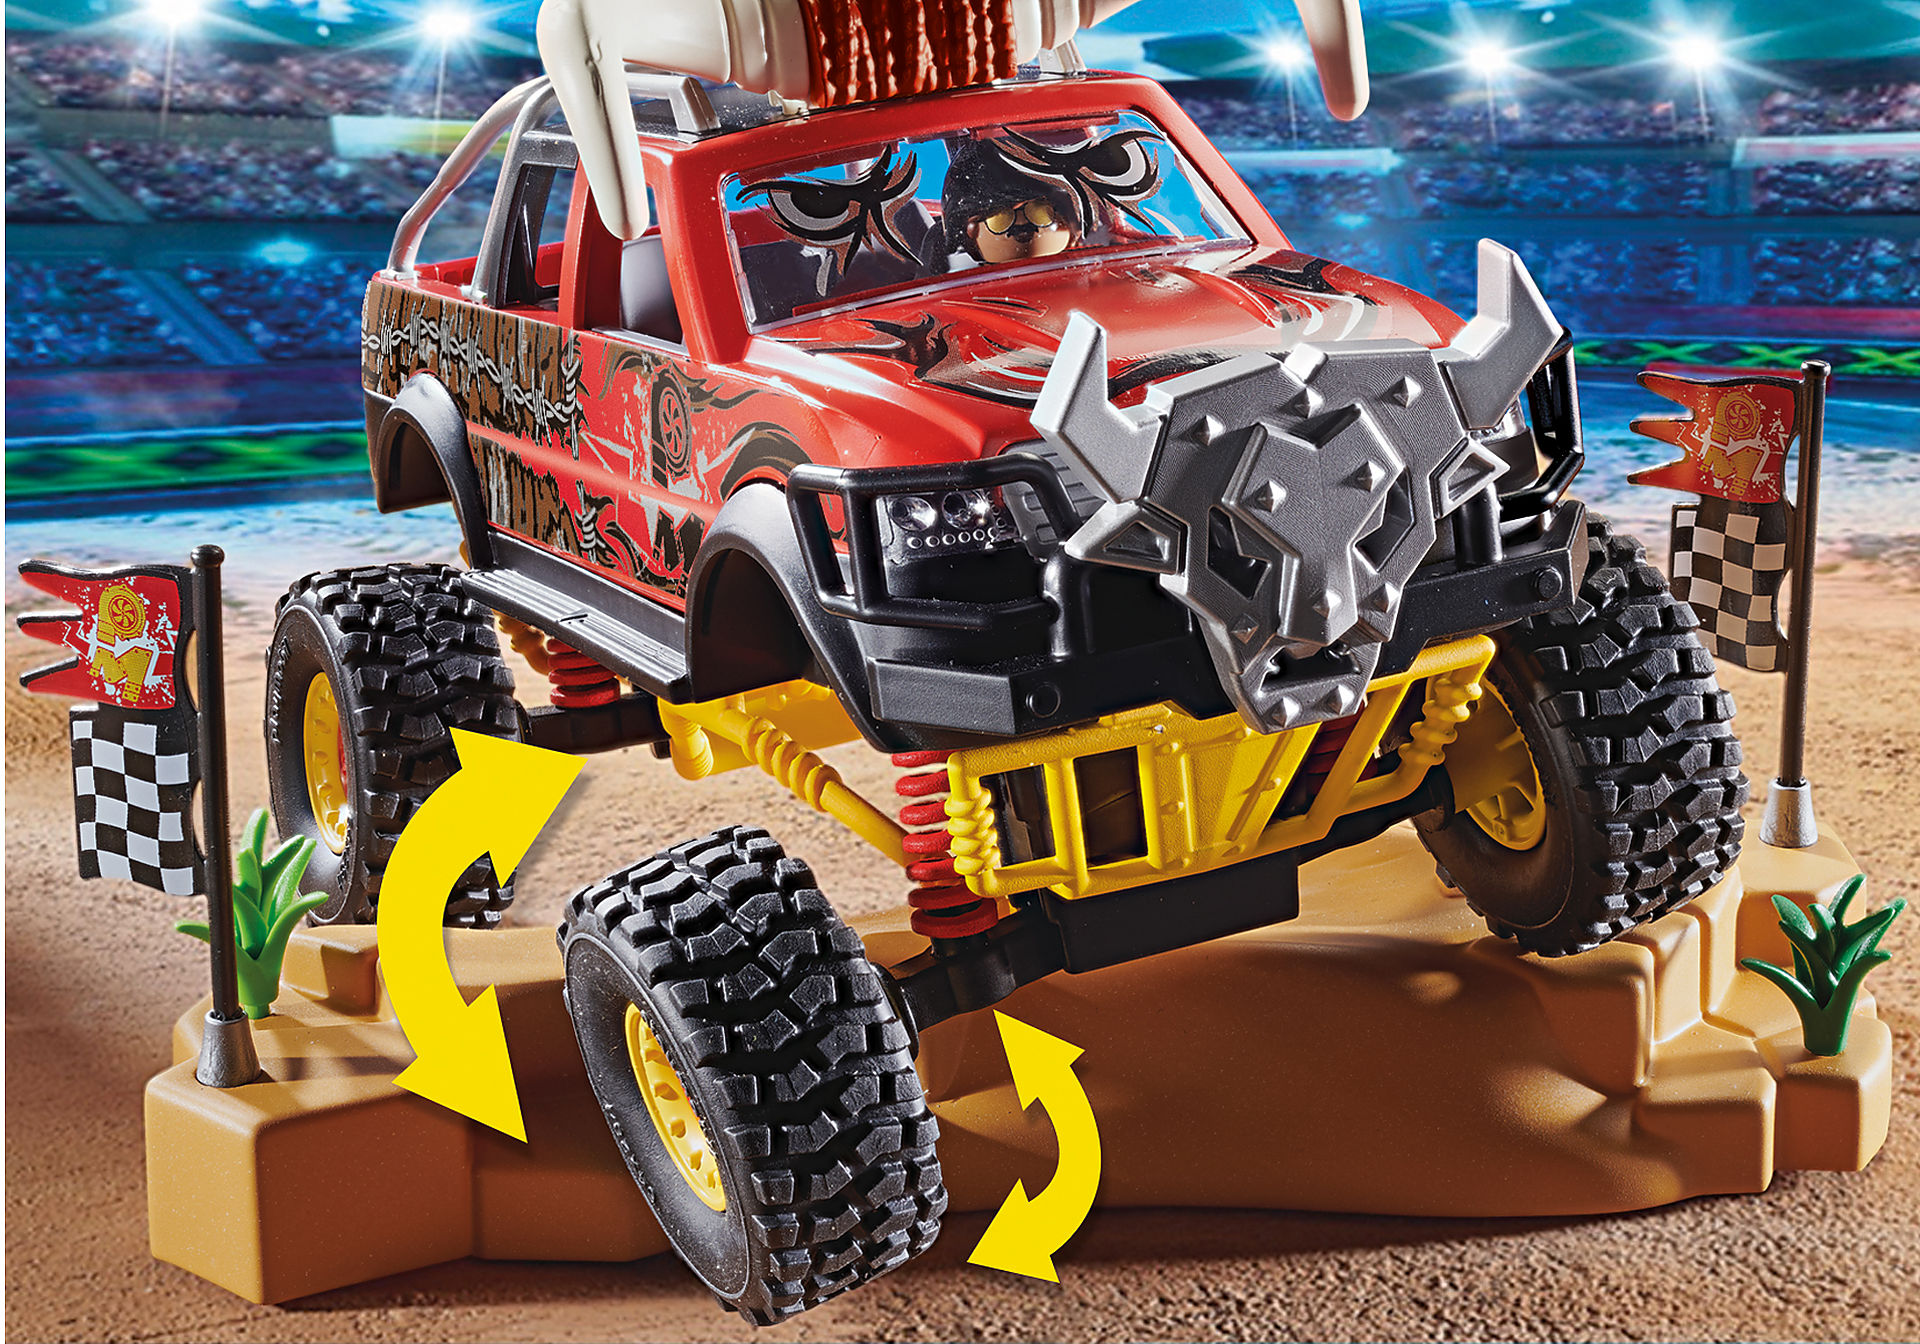 70549 Stuntshow Monster Truck Horned zoom image5